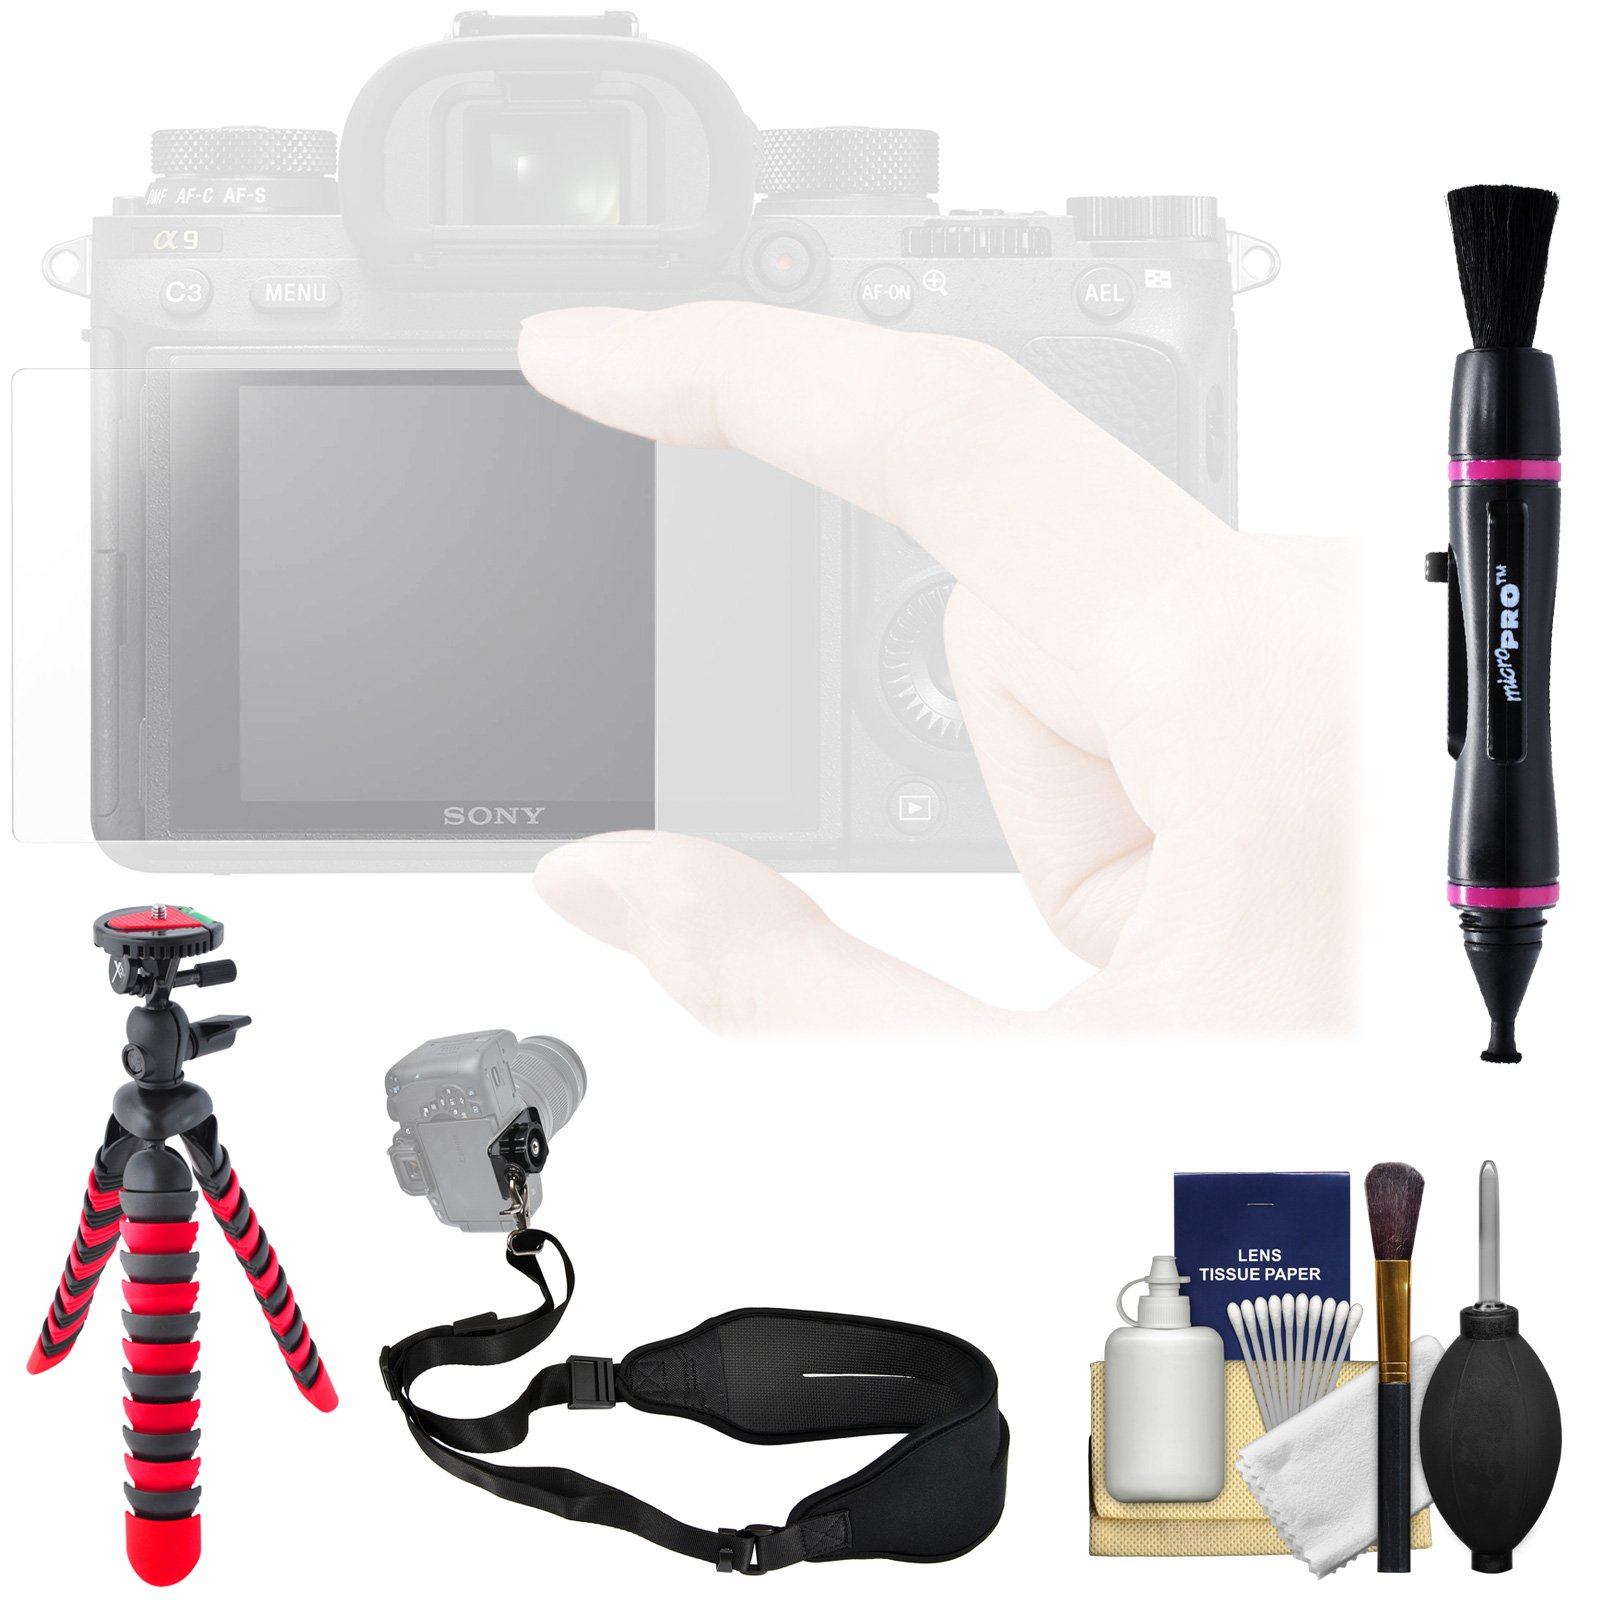 Sony PCK-LG1 Screen Protector Glass Sheet with Strap + Tripod + Kit for RX10 Series, RX100 Series, Alpha A7, A7R, A7S Series & A9